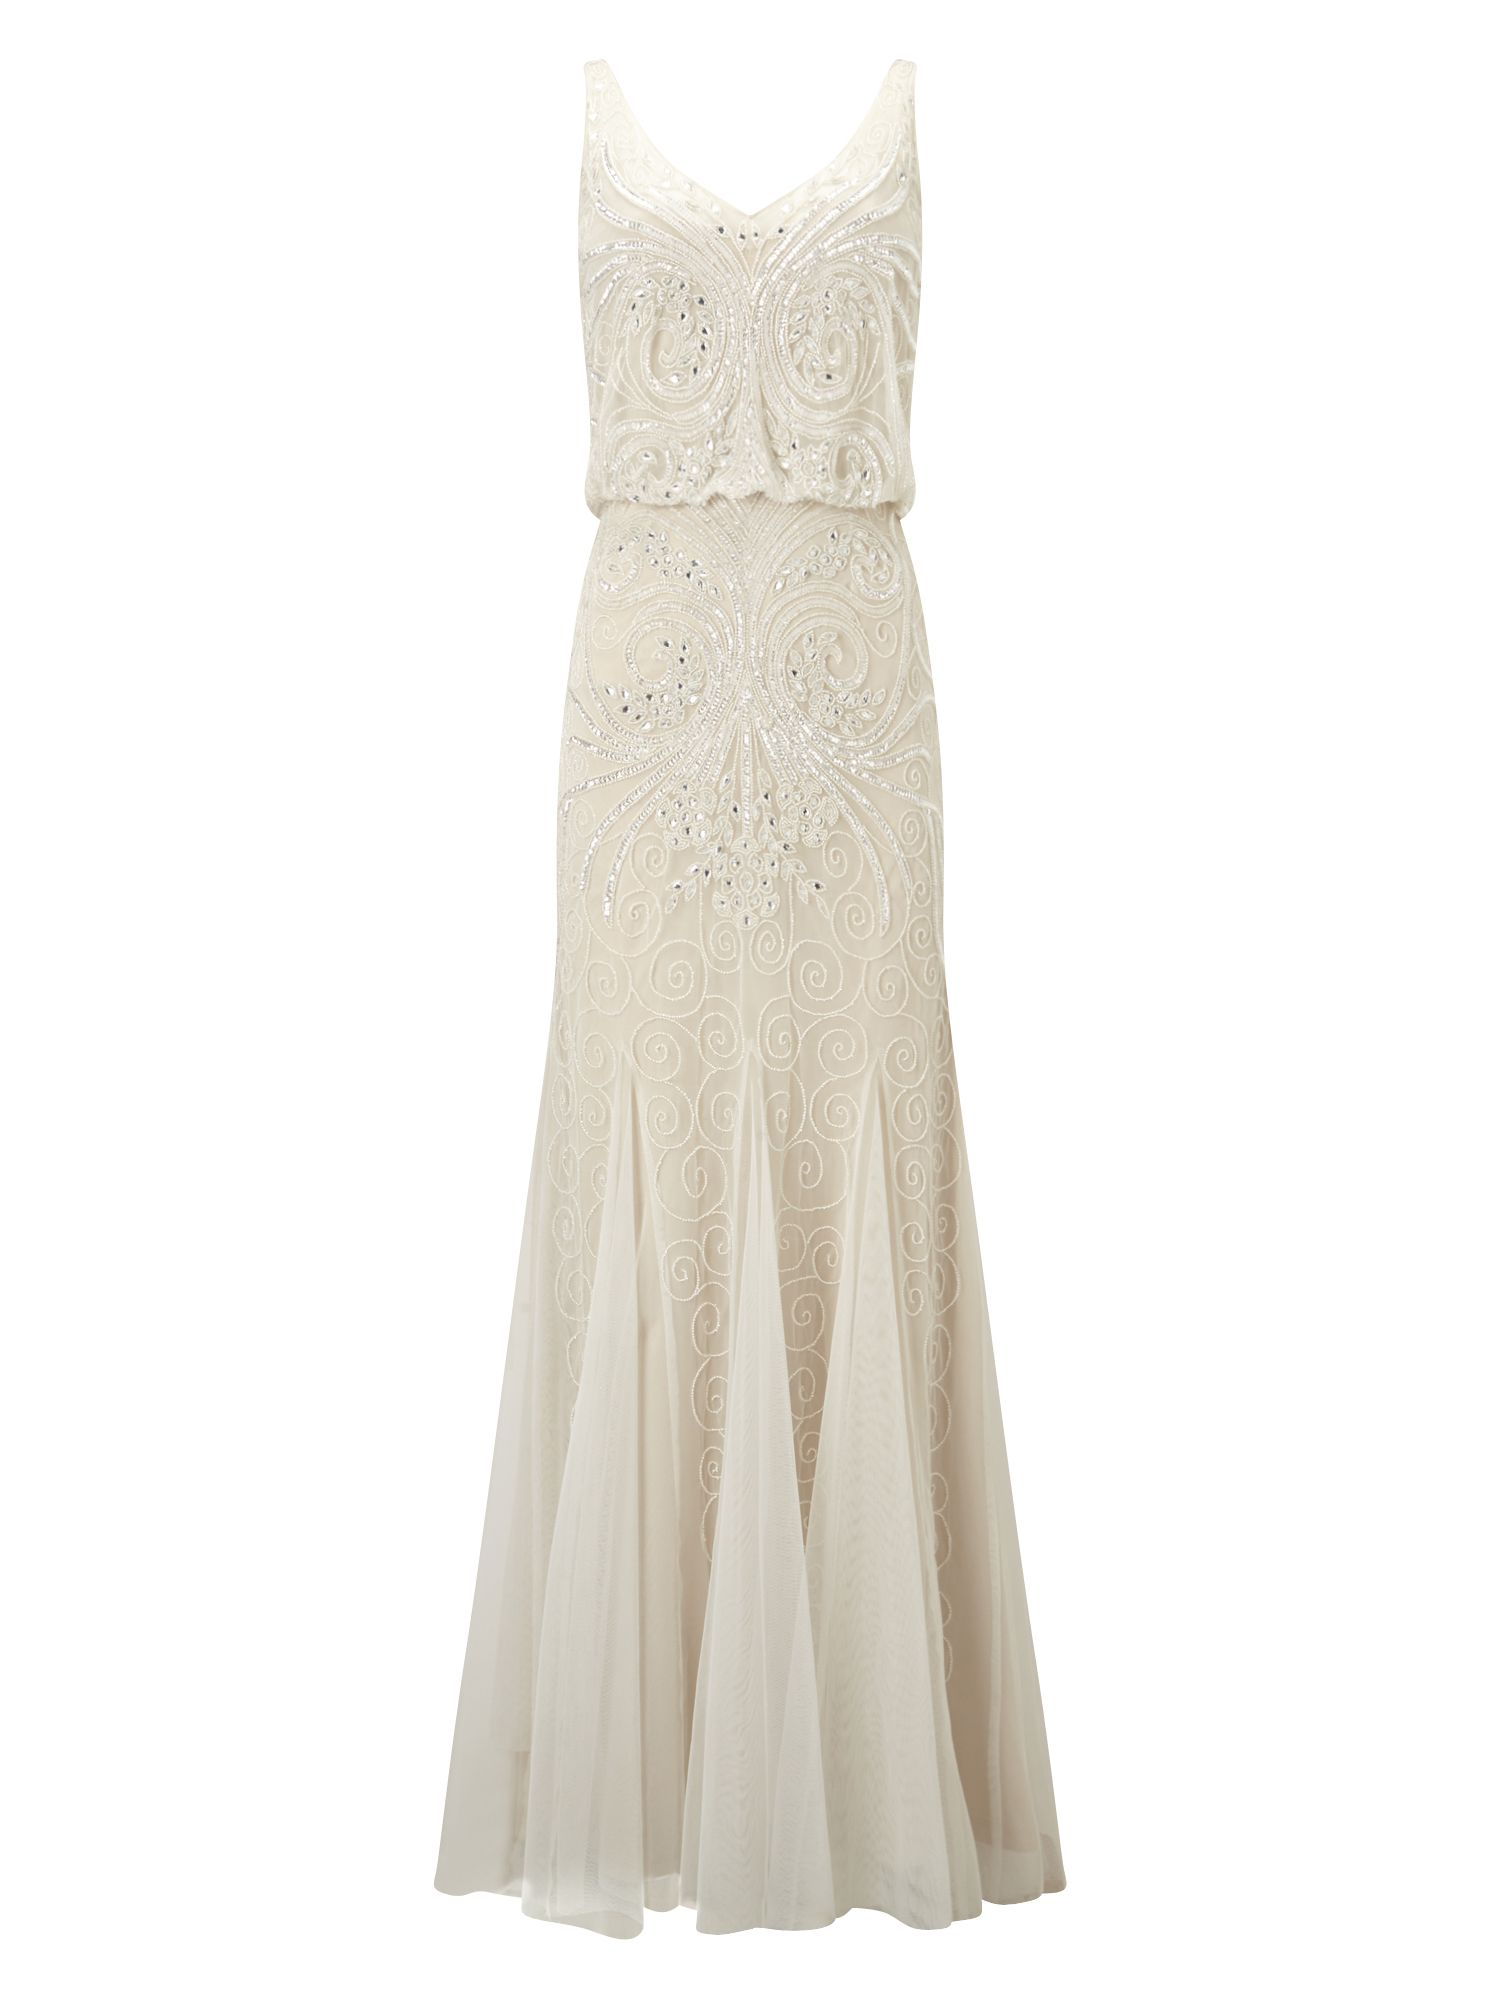 Phase Eight Cathlyn Bridal Dress - House of Fraser